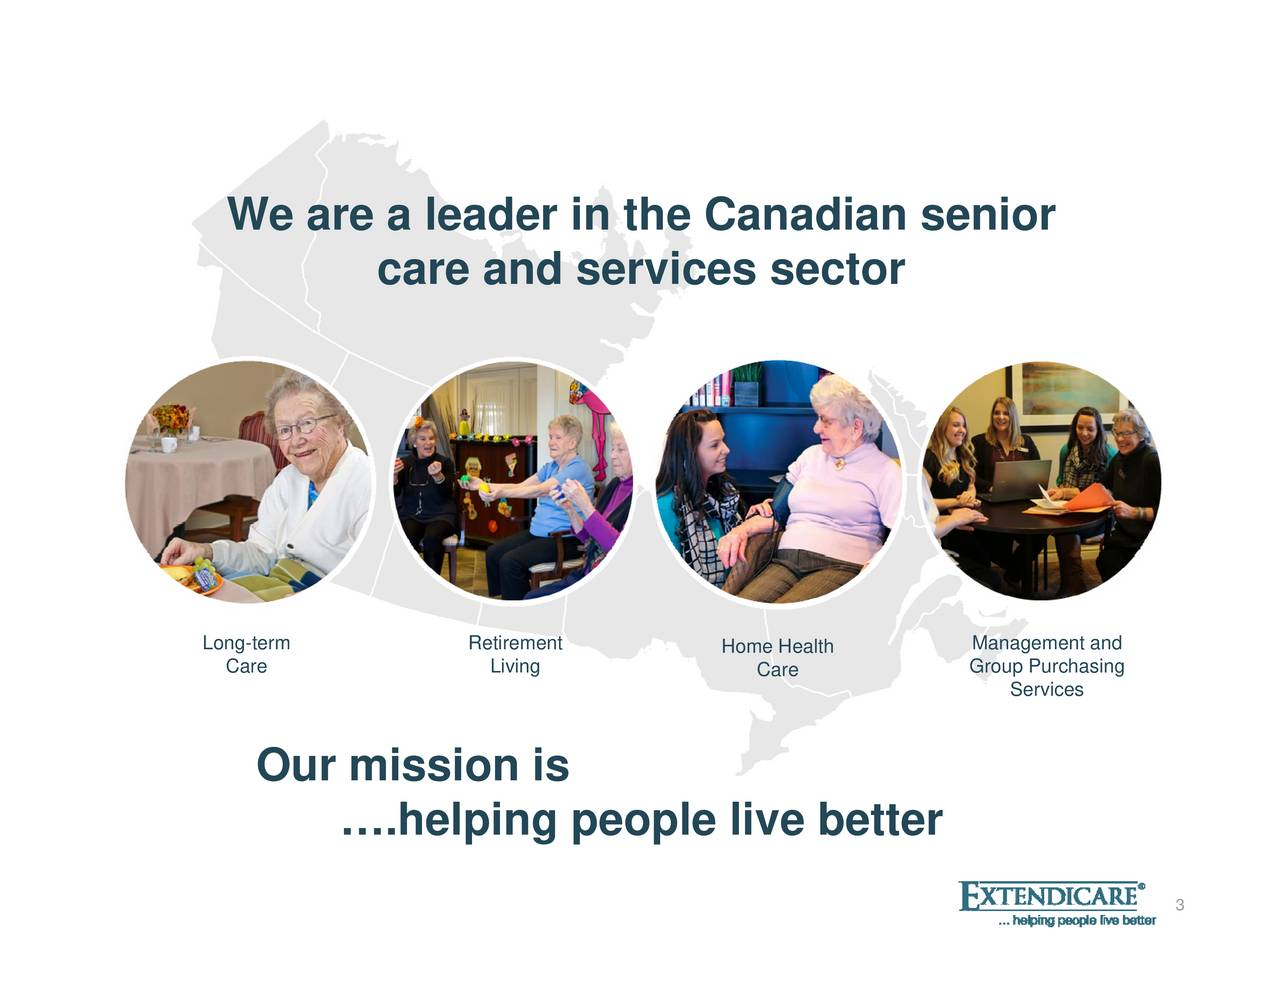 Services MGroup Purchasing er tt b Care ve Home Healthli l Living ig peop Retirement l hli lil bt care and services sector . Our mission is We are a leader in the CanCaren senior Long-term